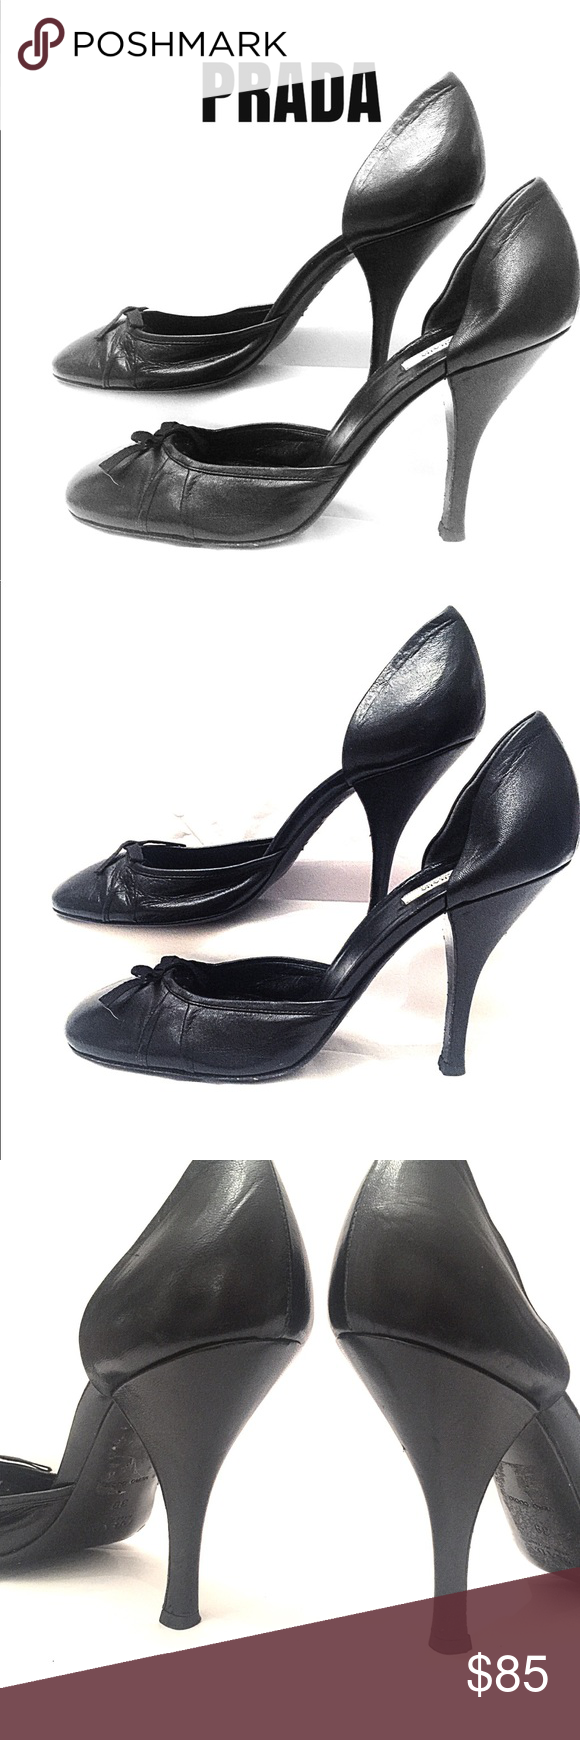 d5e0e12eeec PRADA Black High Heels With Ribbon Sz 39 PRADA black leather heels ...